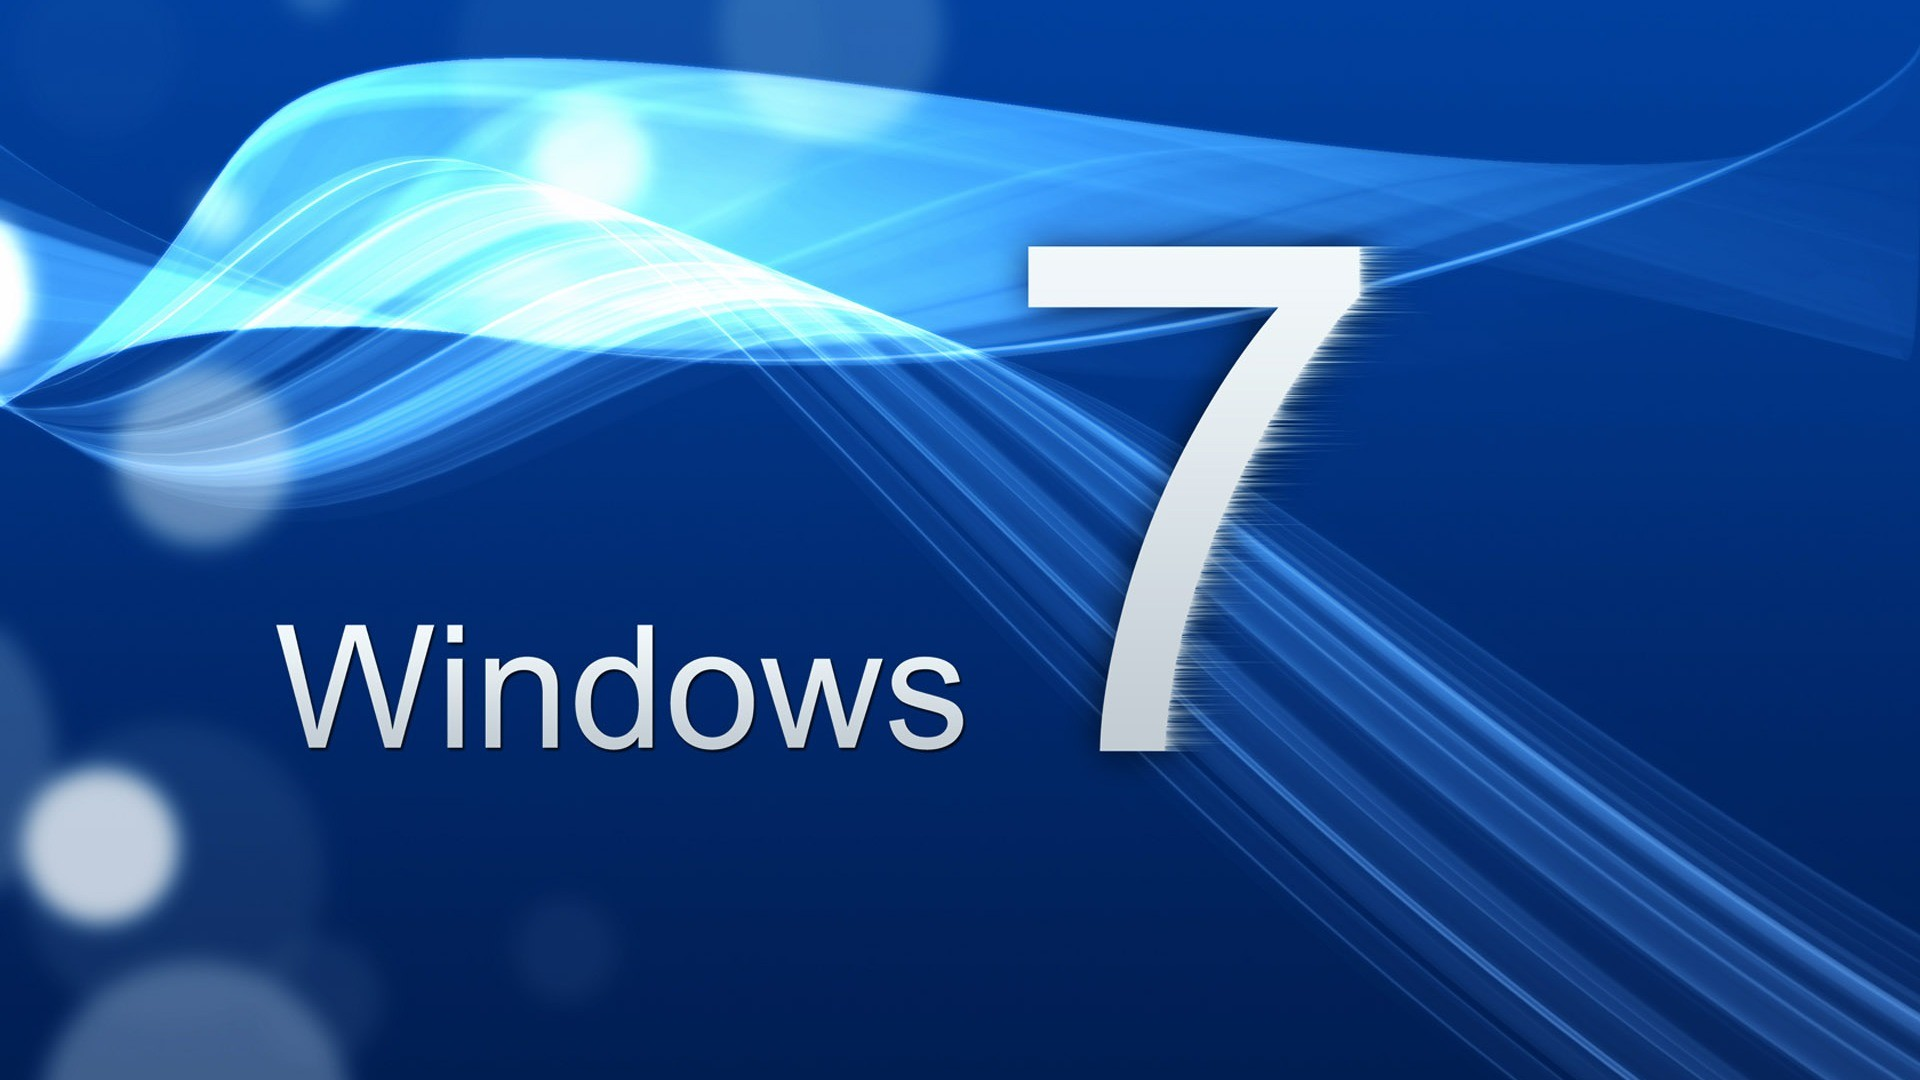 Download Windows 7 SP1 TODAS AS VERSÕES 32 E 64 BITS Agosto 2018